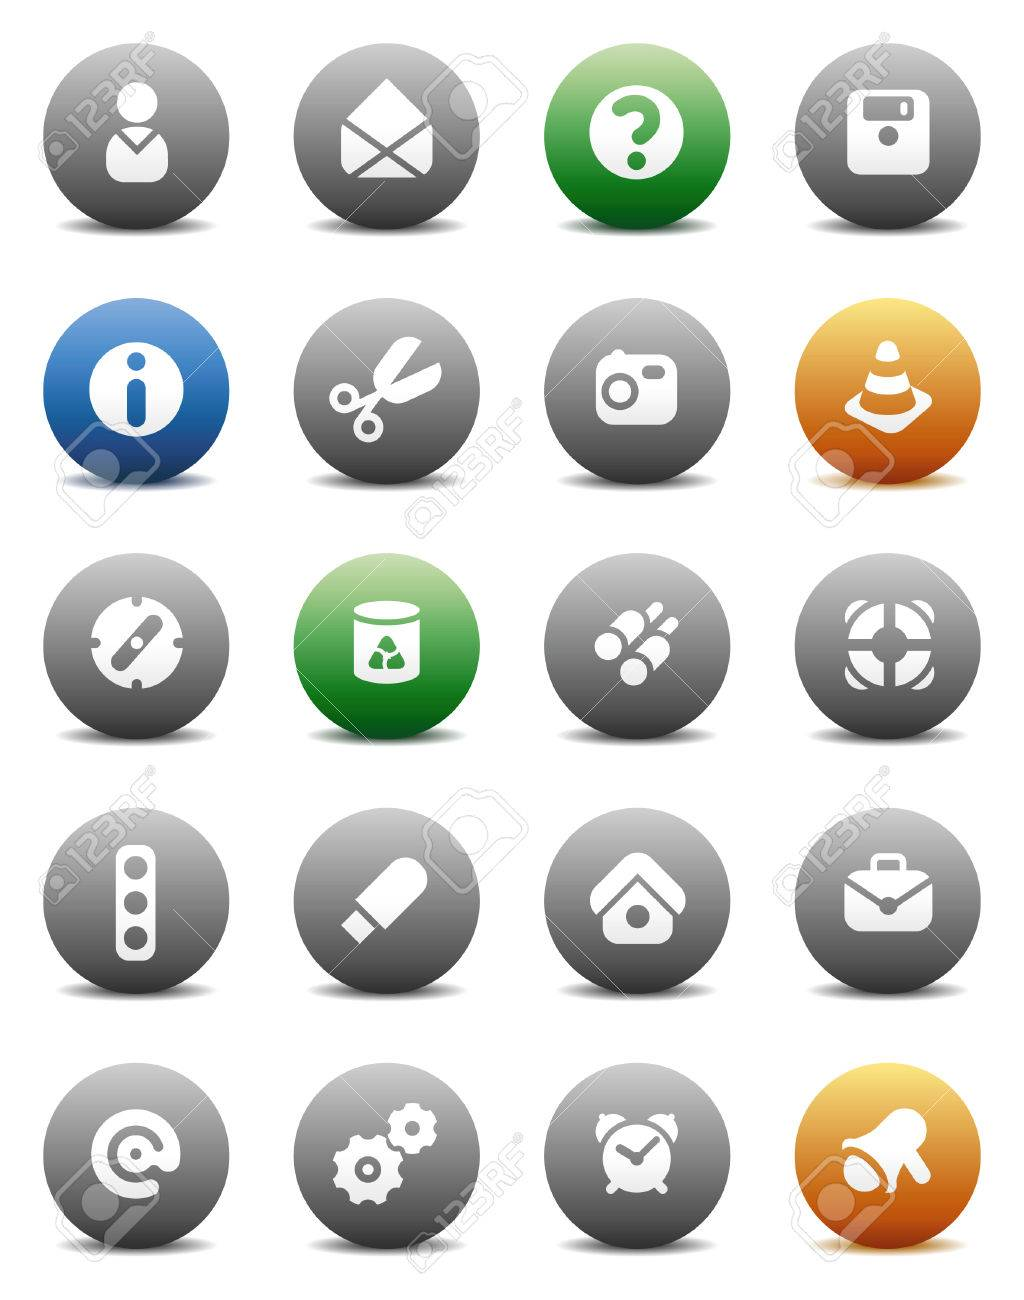 Miscellaneous buttons. Icons for websites and interface elements. Vector illustration. Stock Vector - 5464267